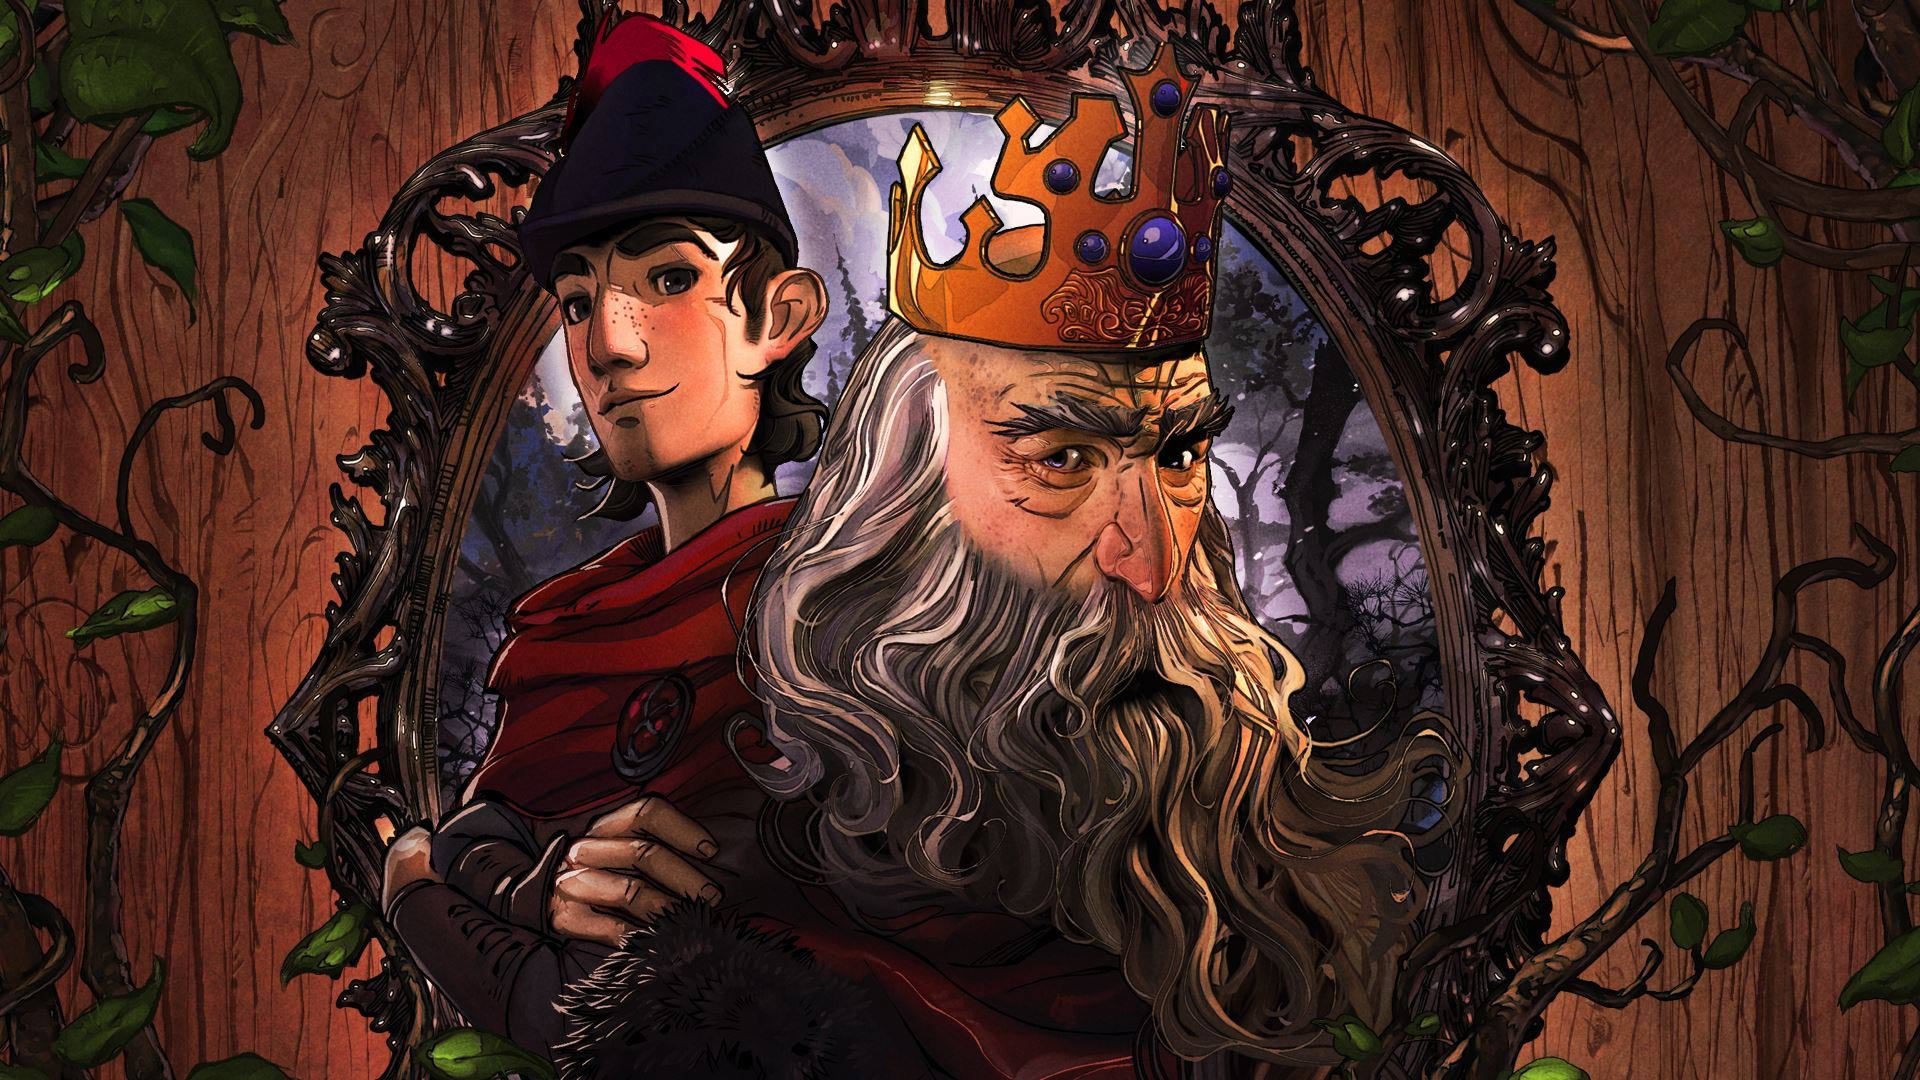 King's Quest Wallpaper